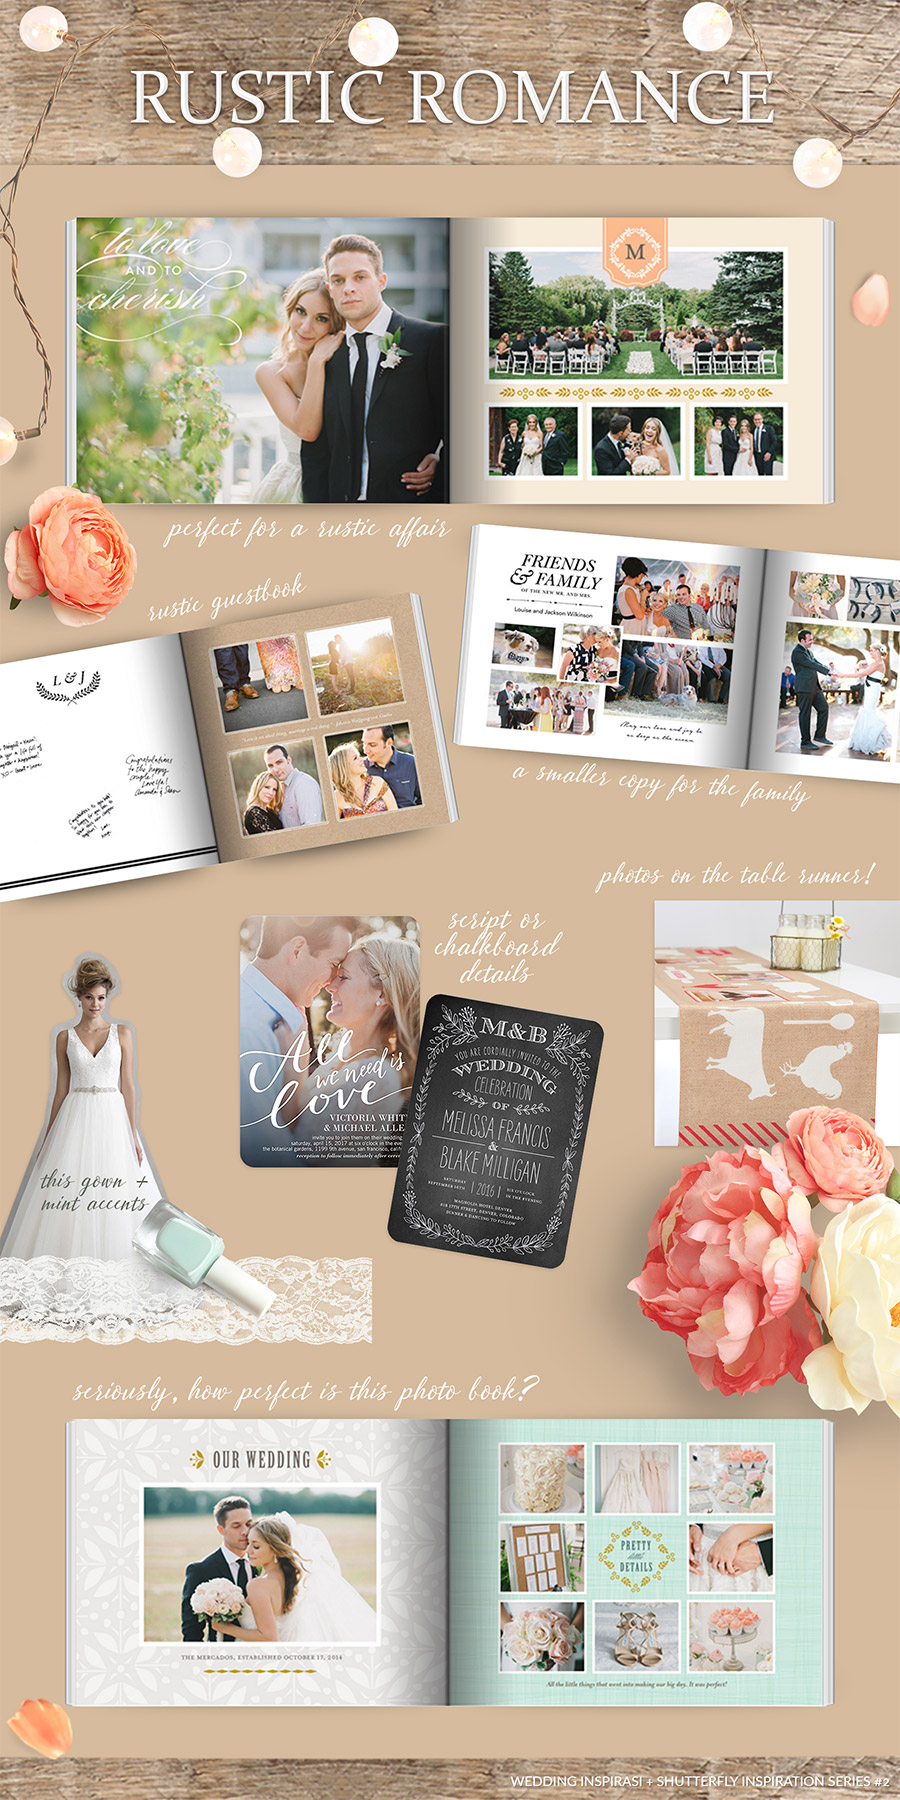 Shutterfly Wedding Al Photobook Rustic Romance Bridal Inspiration Outdoor Board Photo Book Guestbook Chalkboard Mint